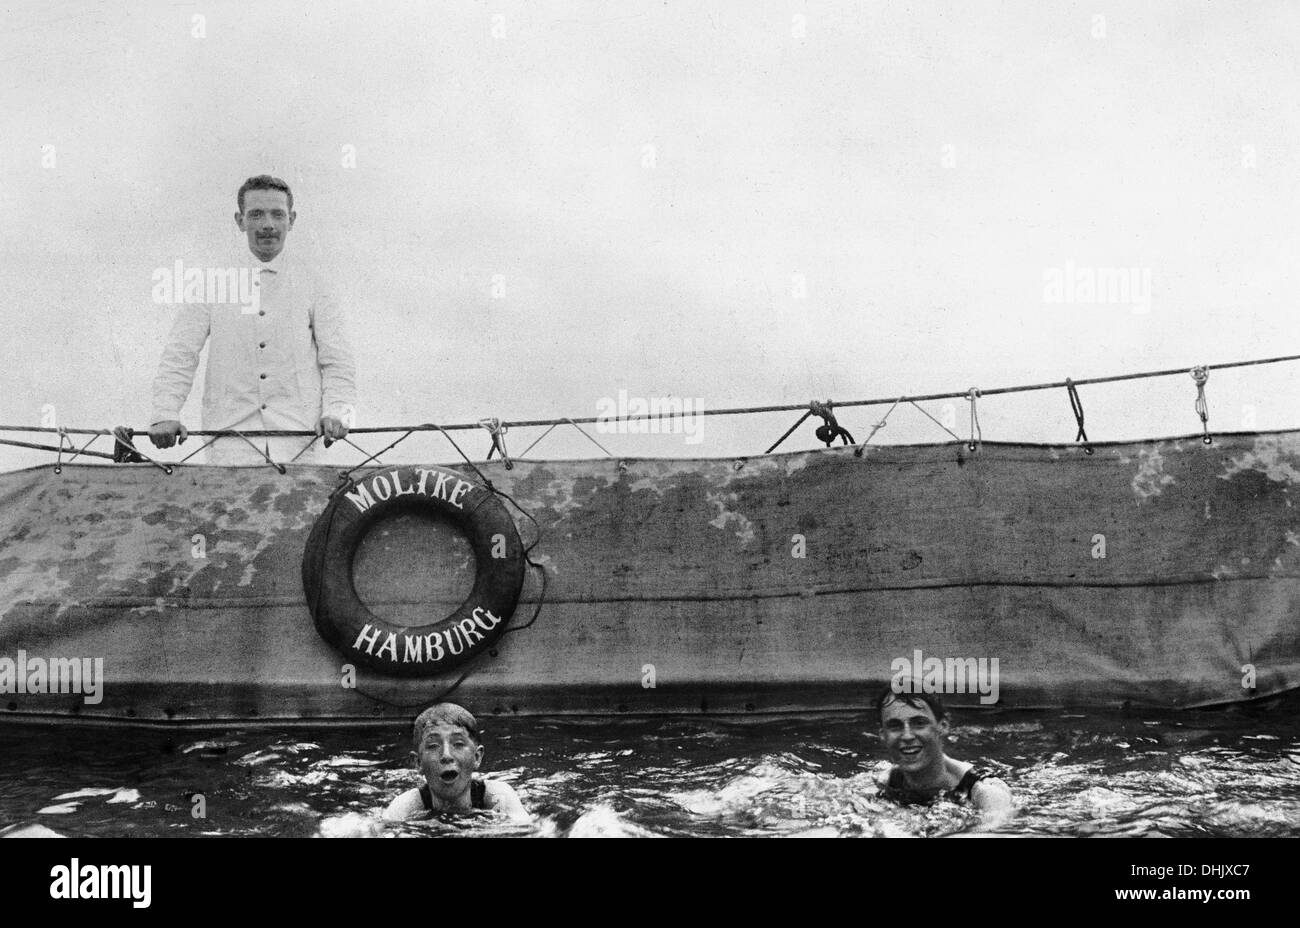 View of the swimming pool on the sun deck of the ocean liner 'Moltke' of Hapag Hamburg (Hamburg America Line), Blohm und Voss Hamburg, shipyard 1901, photograph taken around 1910. The image was taken by the German photographer Oswald Lübeck, one of the earliest representatives of travel photography and ship photography aboard passenger ships. Photo: Deutsche Fotothek/Oswald Lübeck - Stock Image